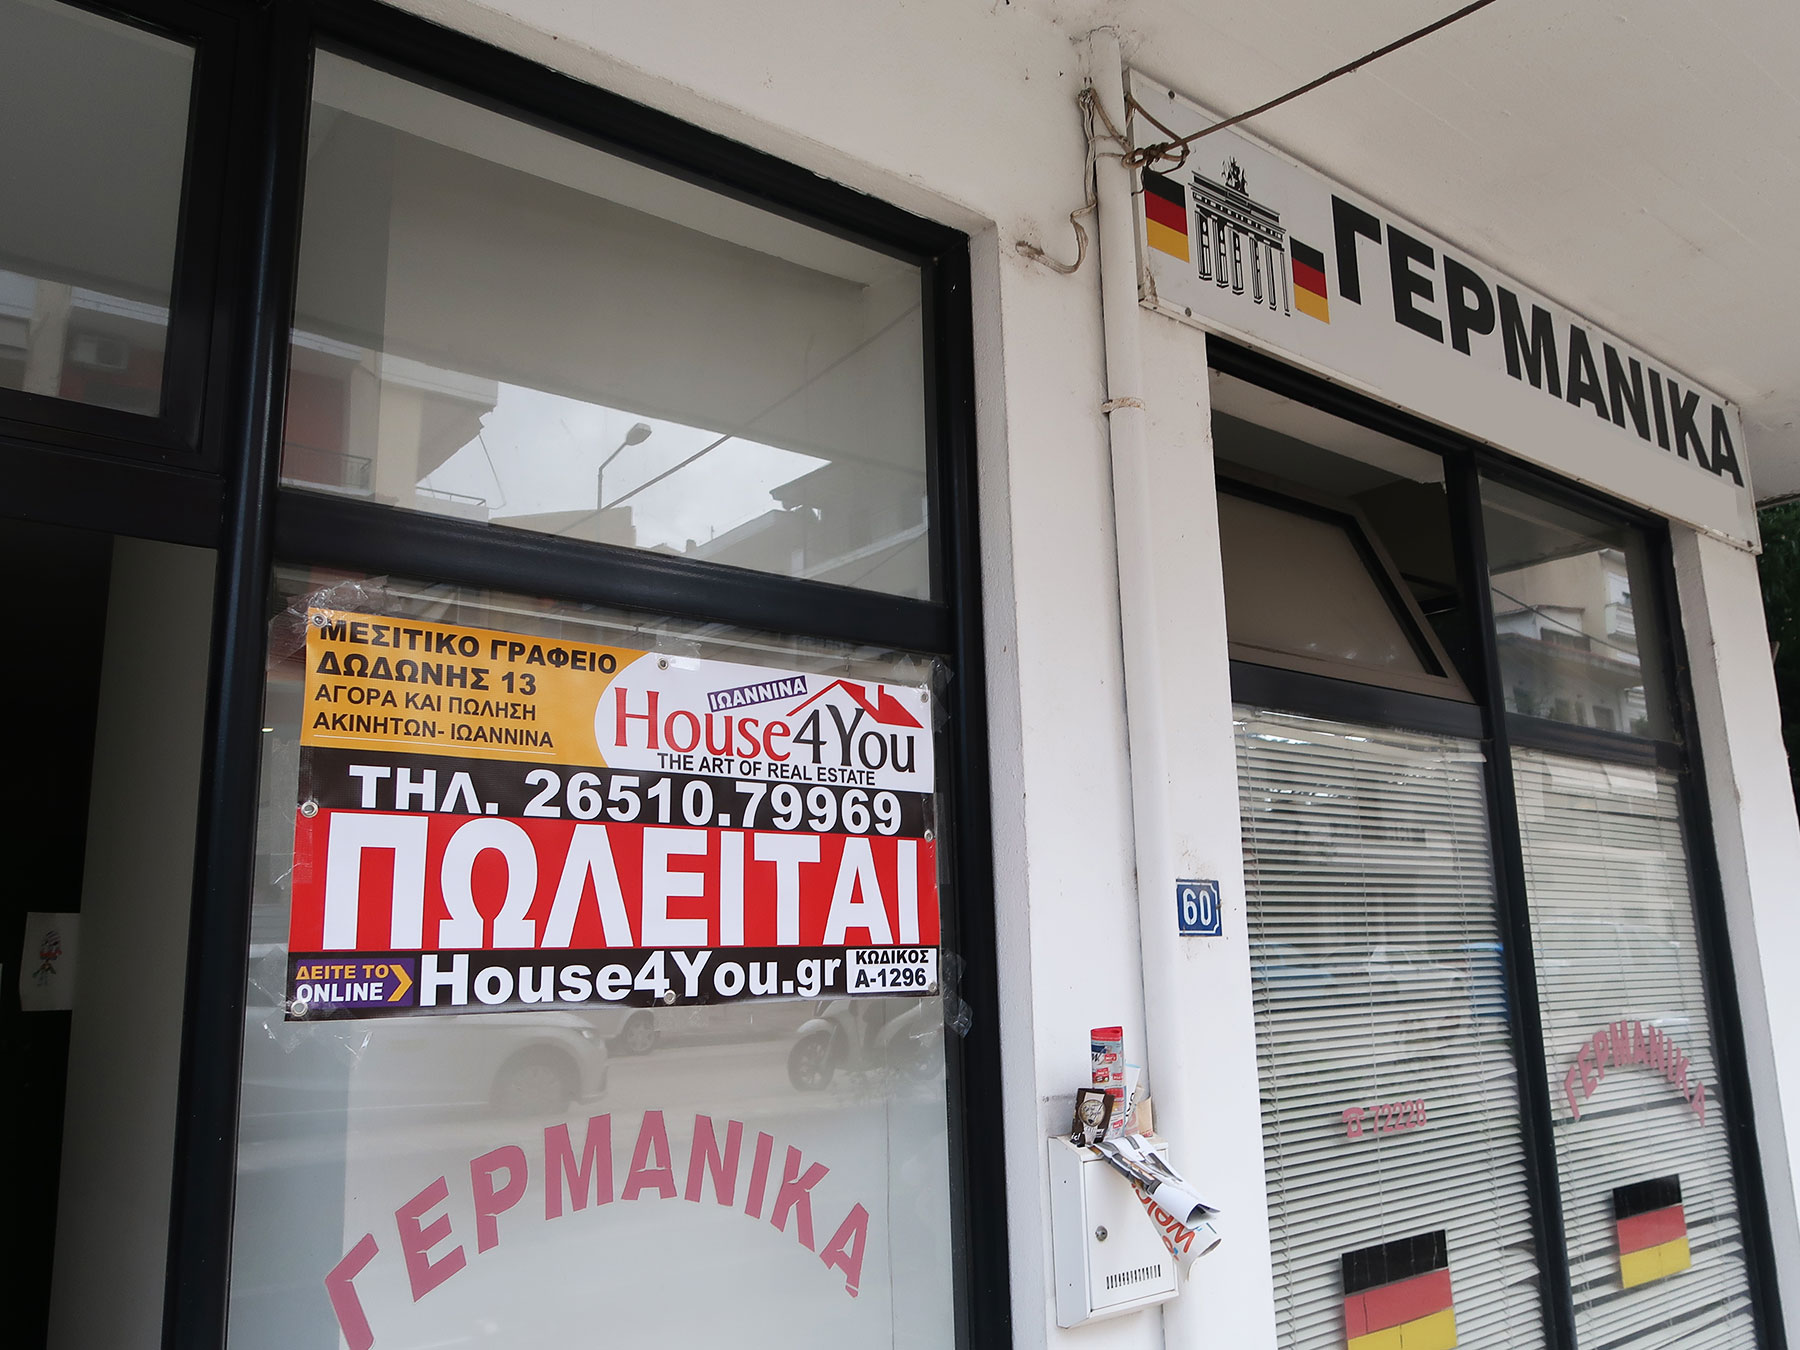 Commercial space for sale ground floor store 124 sq.m. in Marikas Kotopouli in Ampelokipi, Ioannina